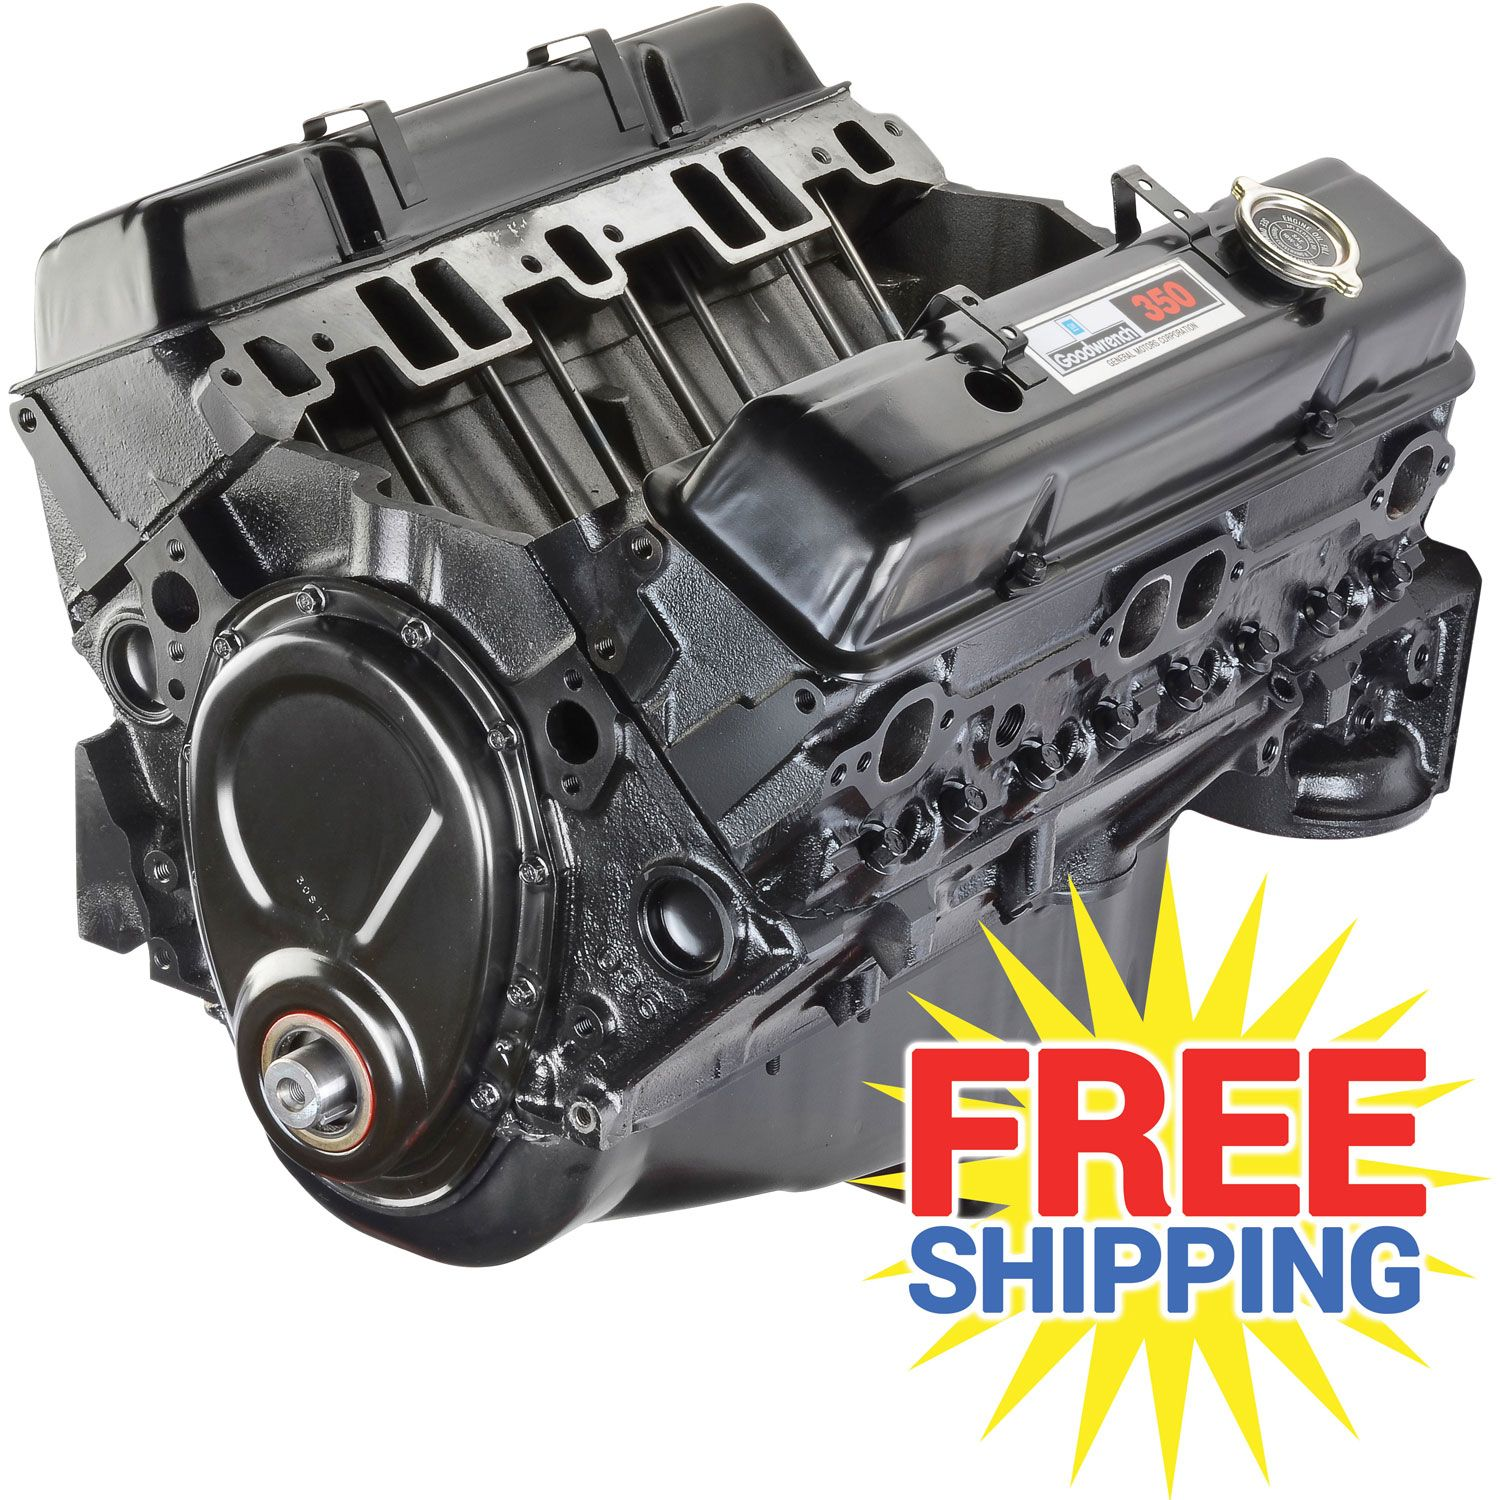 Chevrolet Performance 12681429 Gm Goodwrench 350ci Crate Engine